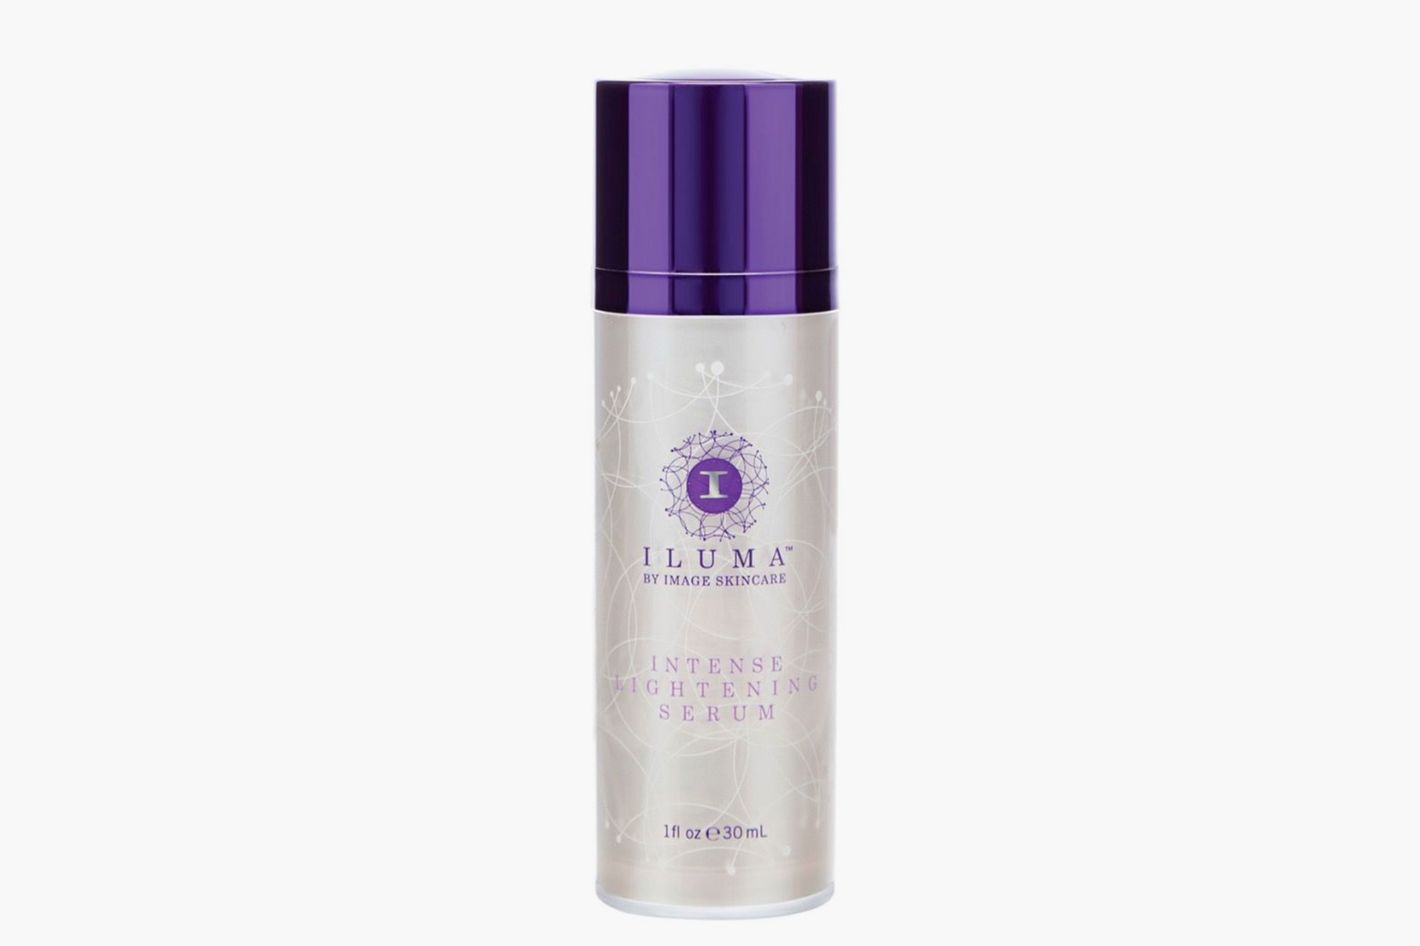 Image Skin Care Iluma Intense Brightening Serum